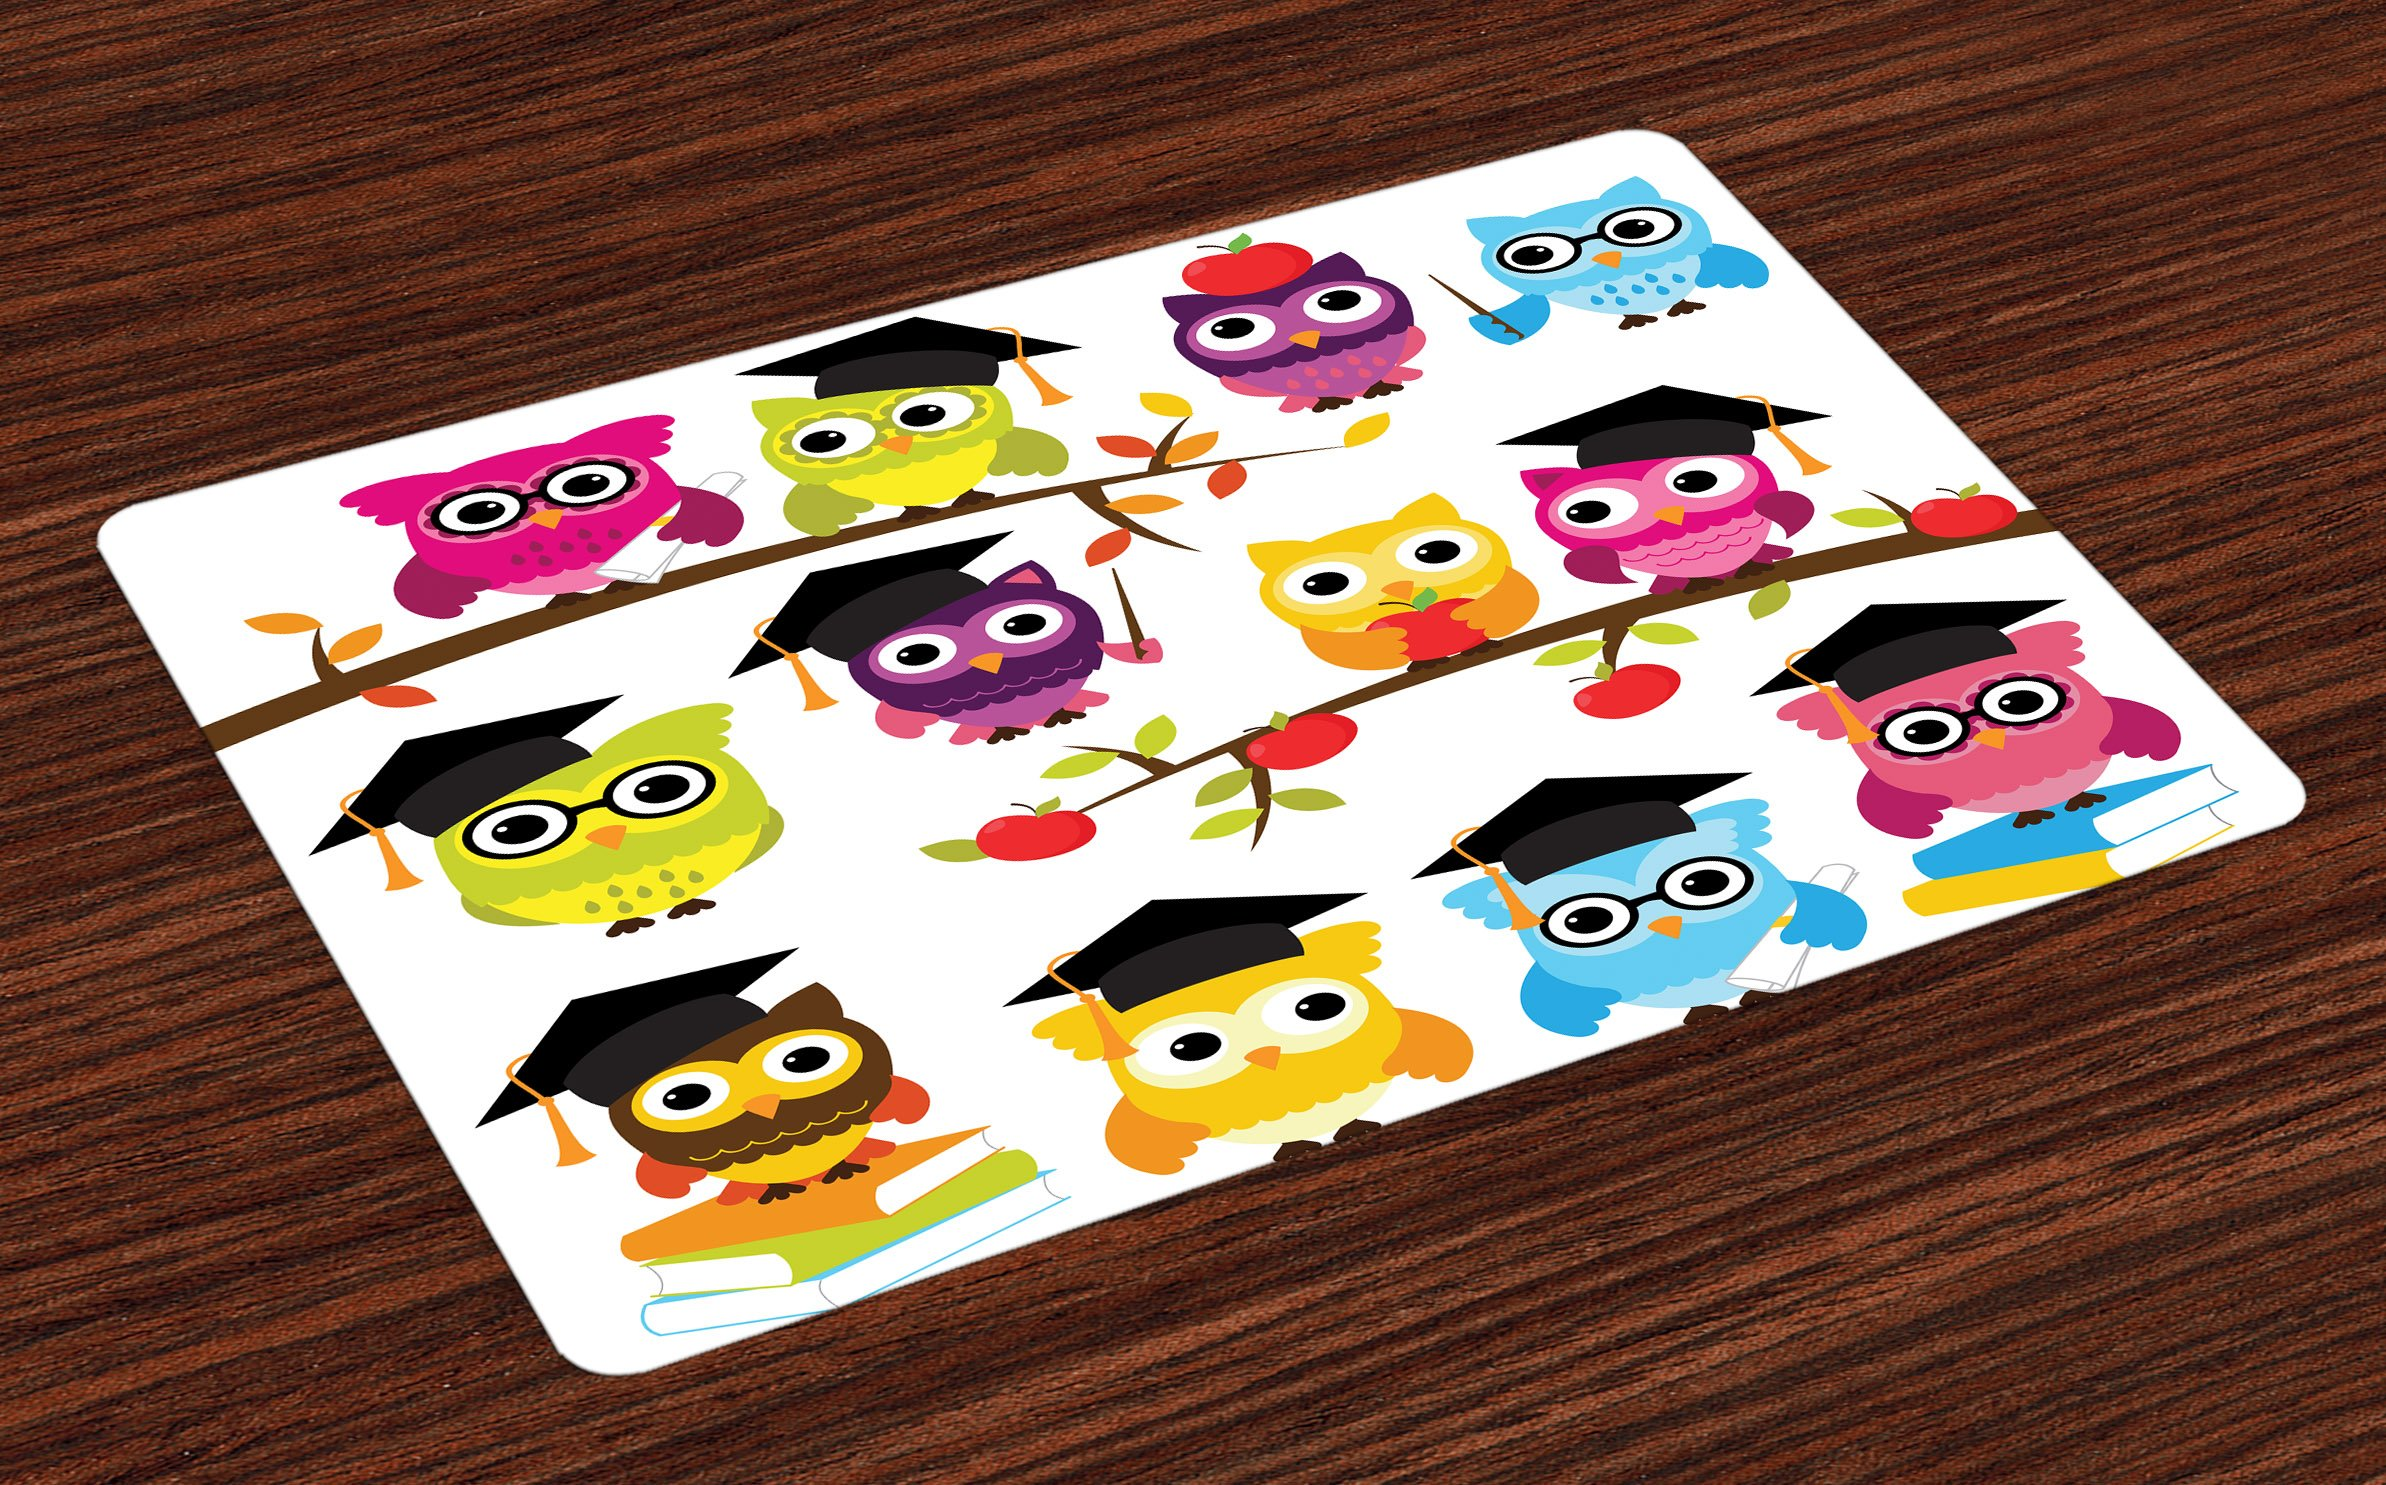 Lunarable Owls Place Mats Set of 4, Group of Smart Owls with Books Apples Hats Degree School Graduation Themed Artwork, Washable Fabric Placemats for Dining Room Kitchen Table Decoration, Multicolor